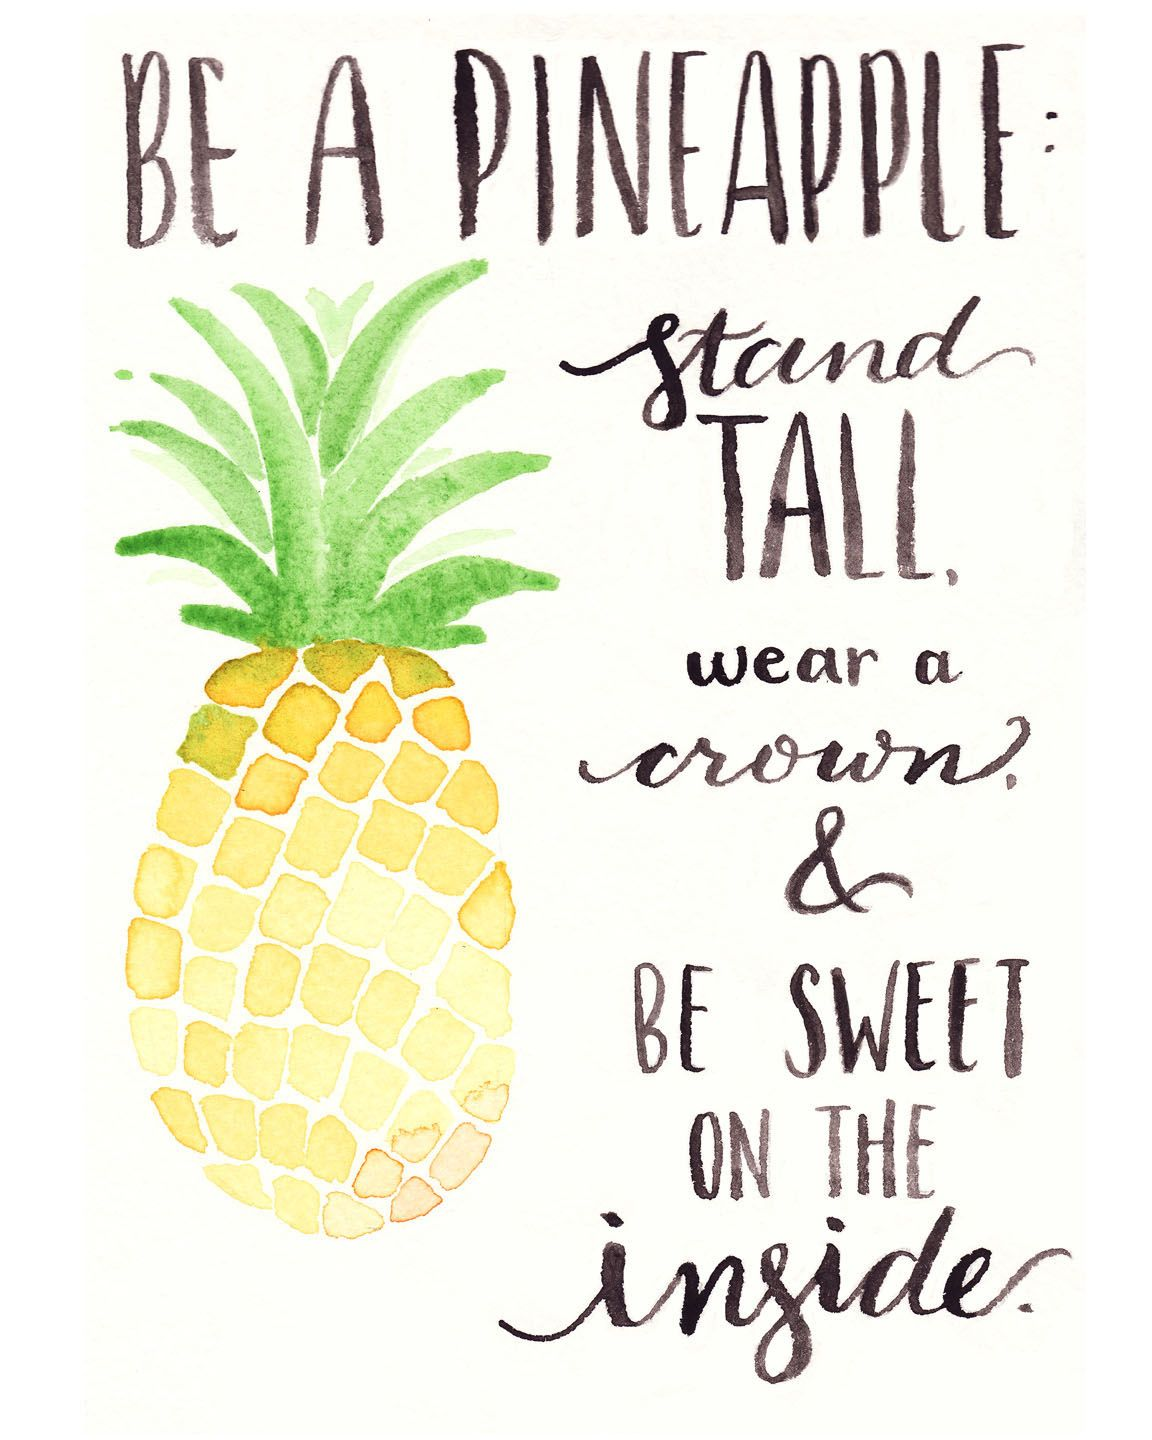 image relating to Free Printable Pineapple called No cost Watercolor Printable: Be A Pineapple Hayleys Favs